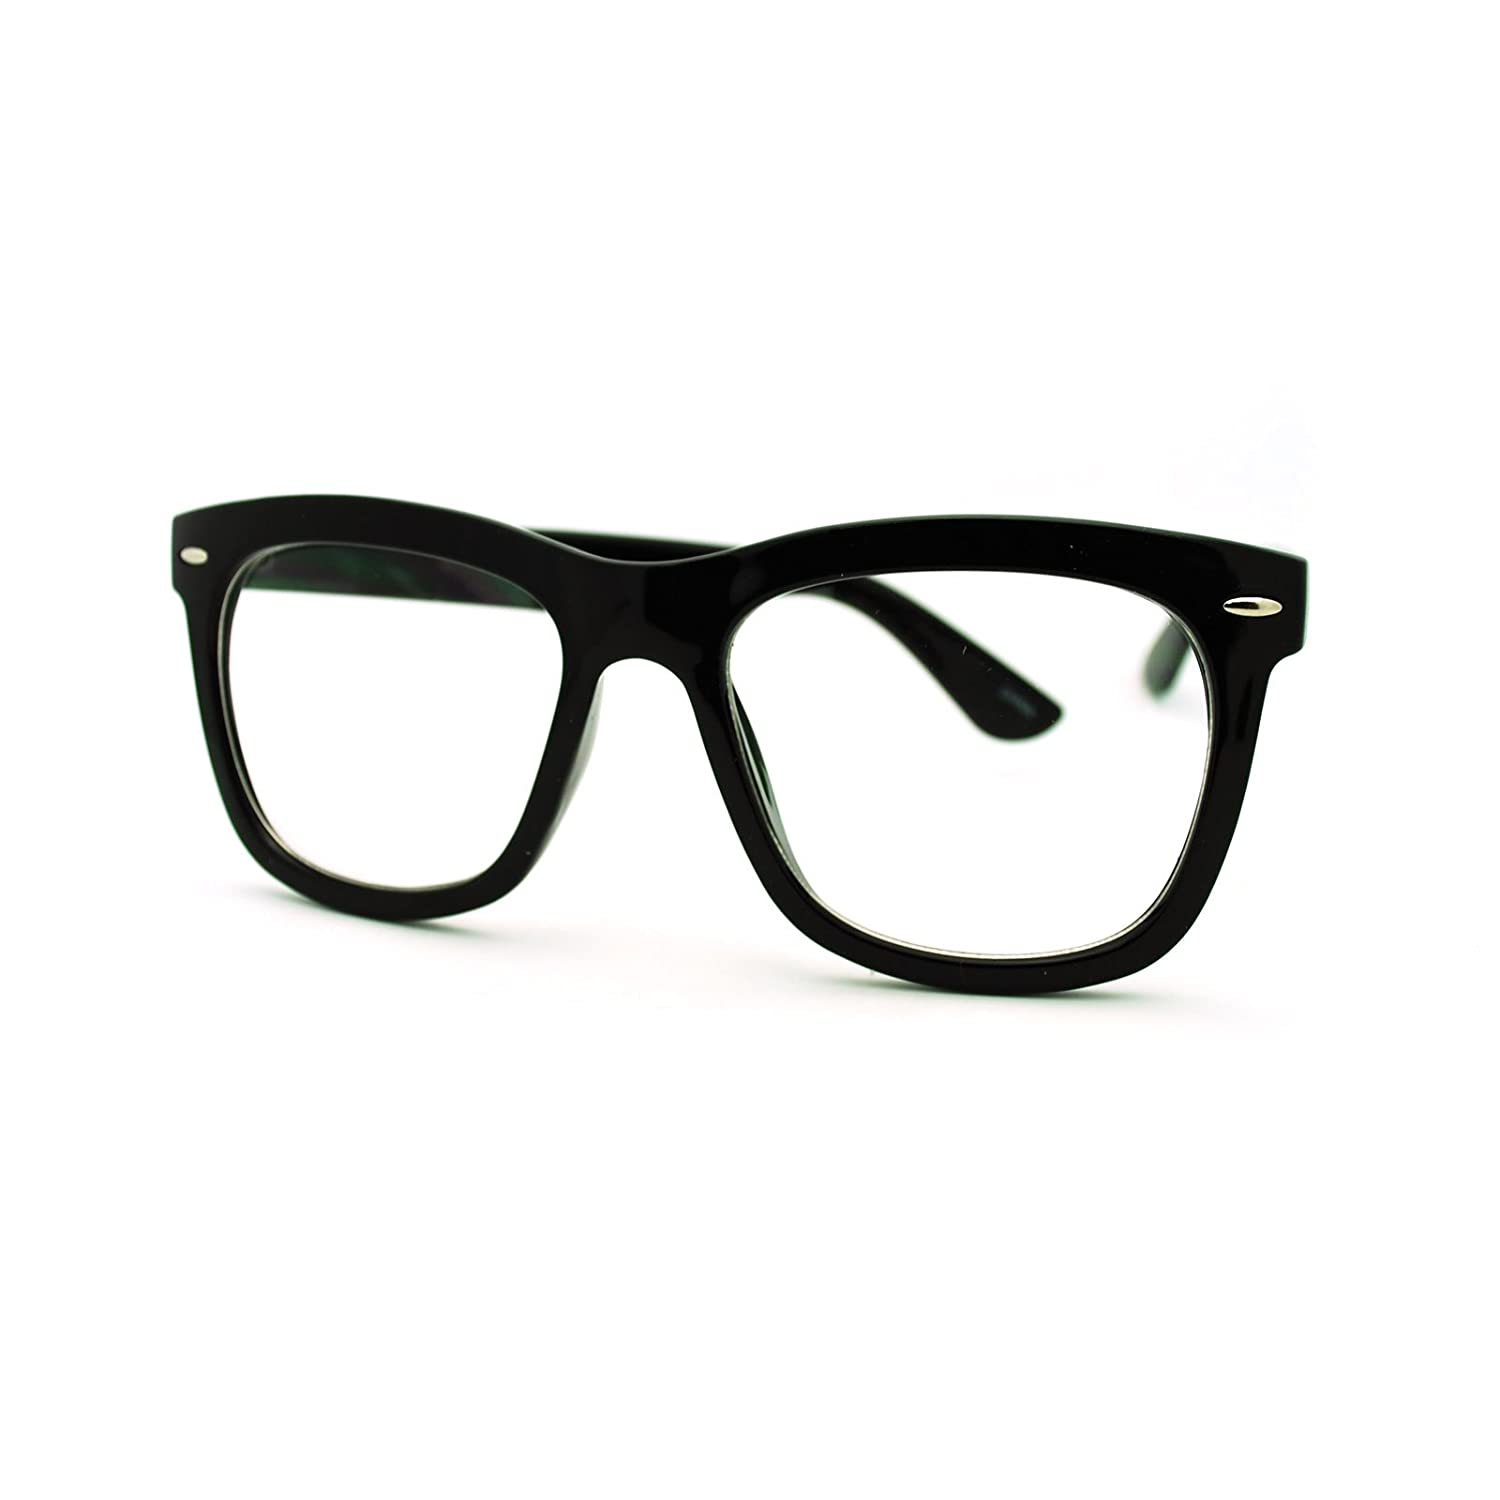 Amazon.com: Clear Lens Eyeglasses Oversized Thick Square Frame Nerdy ...